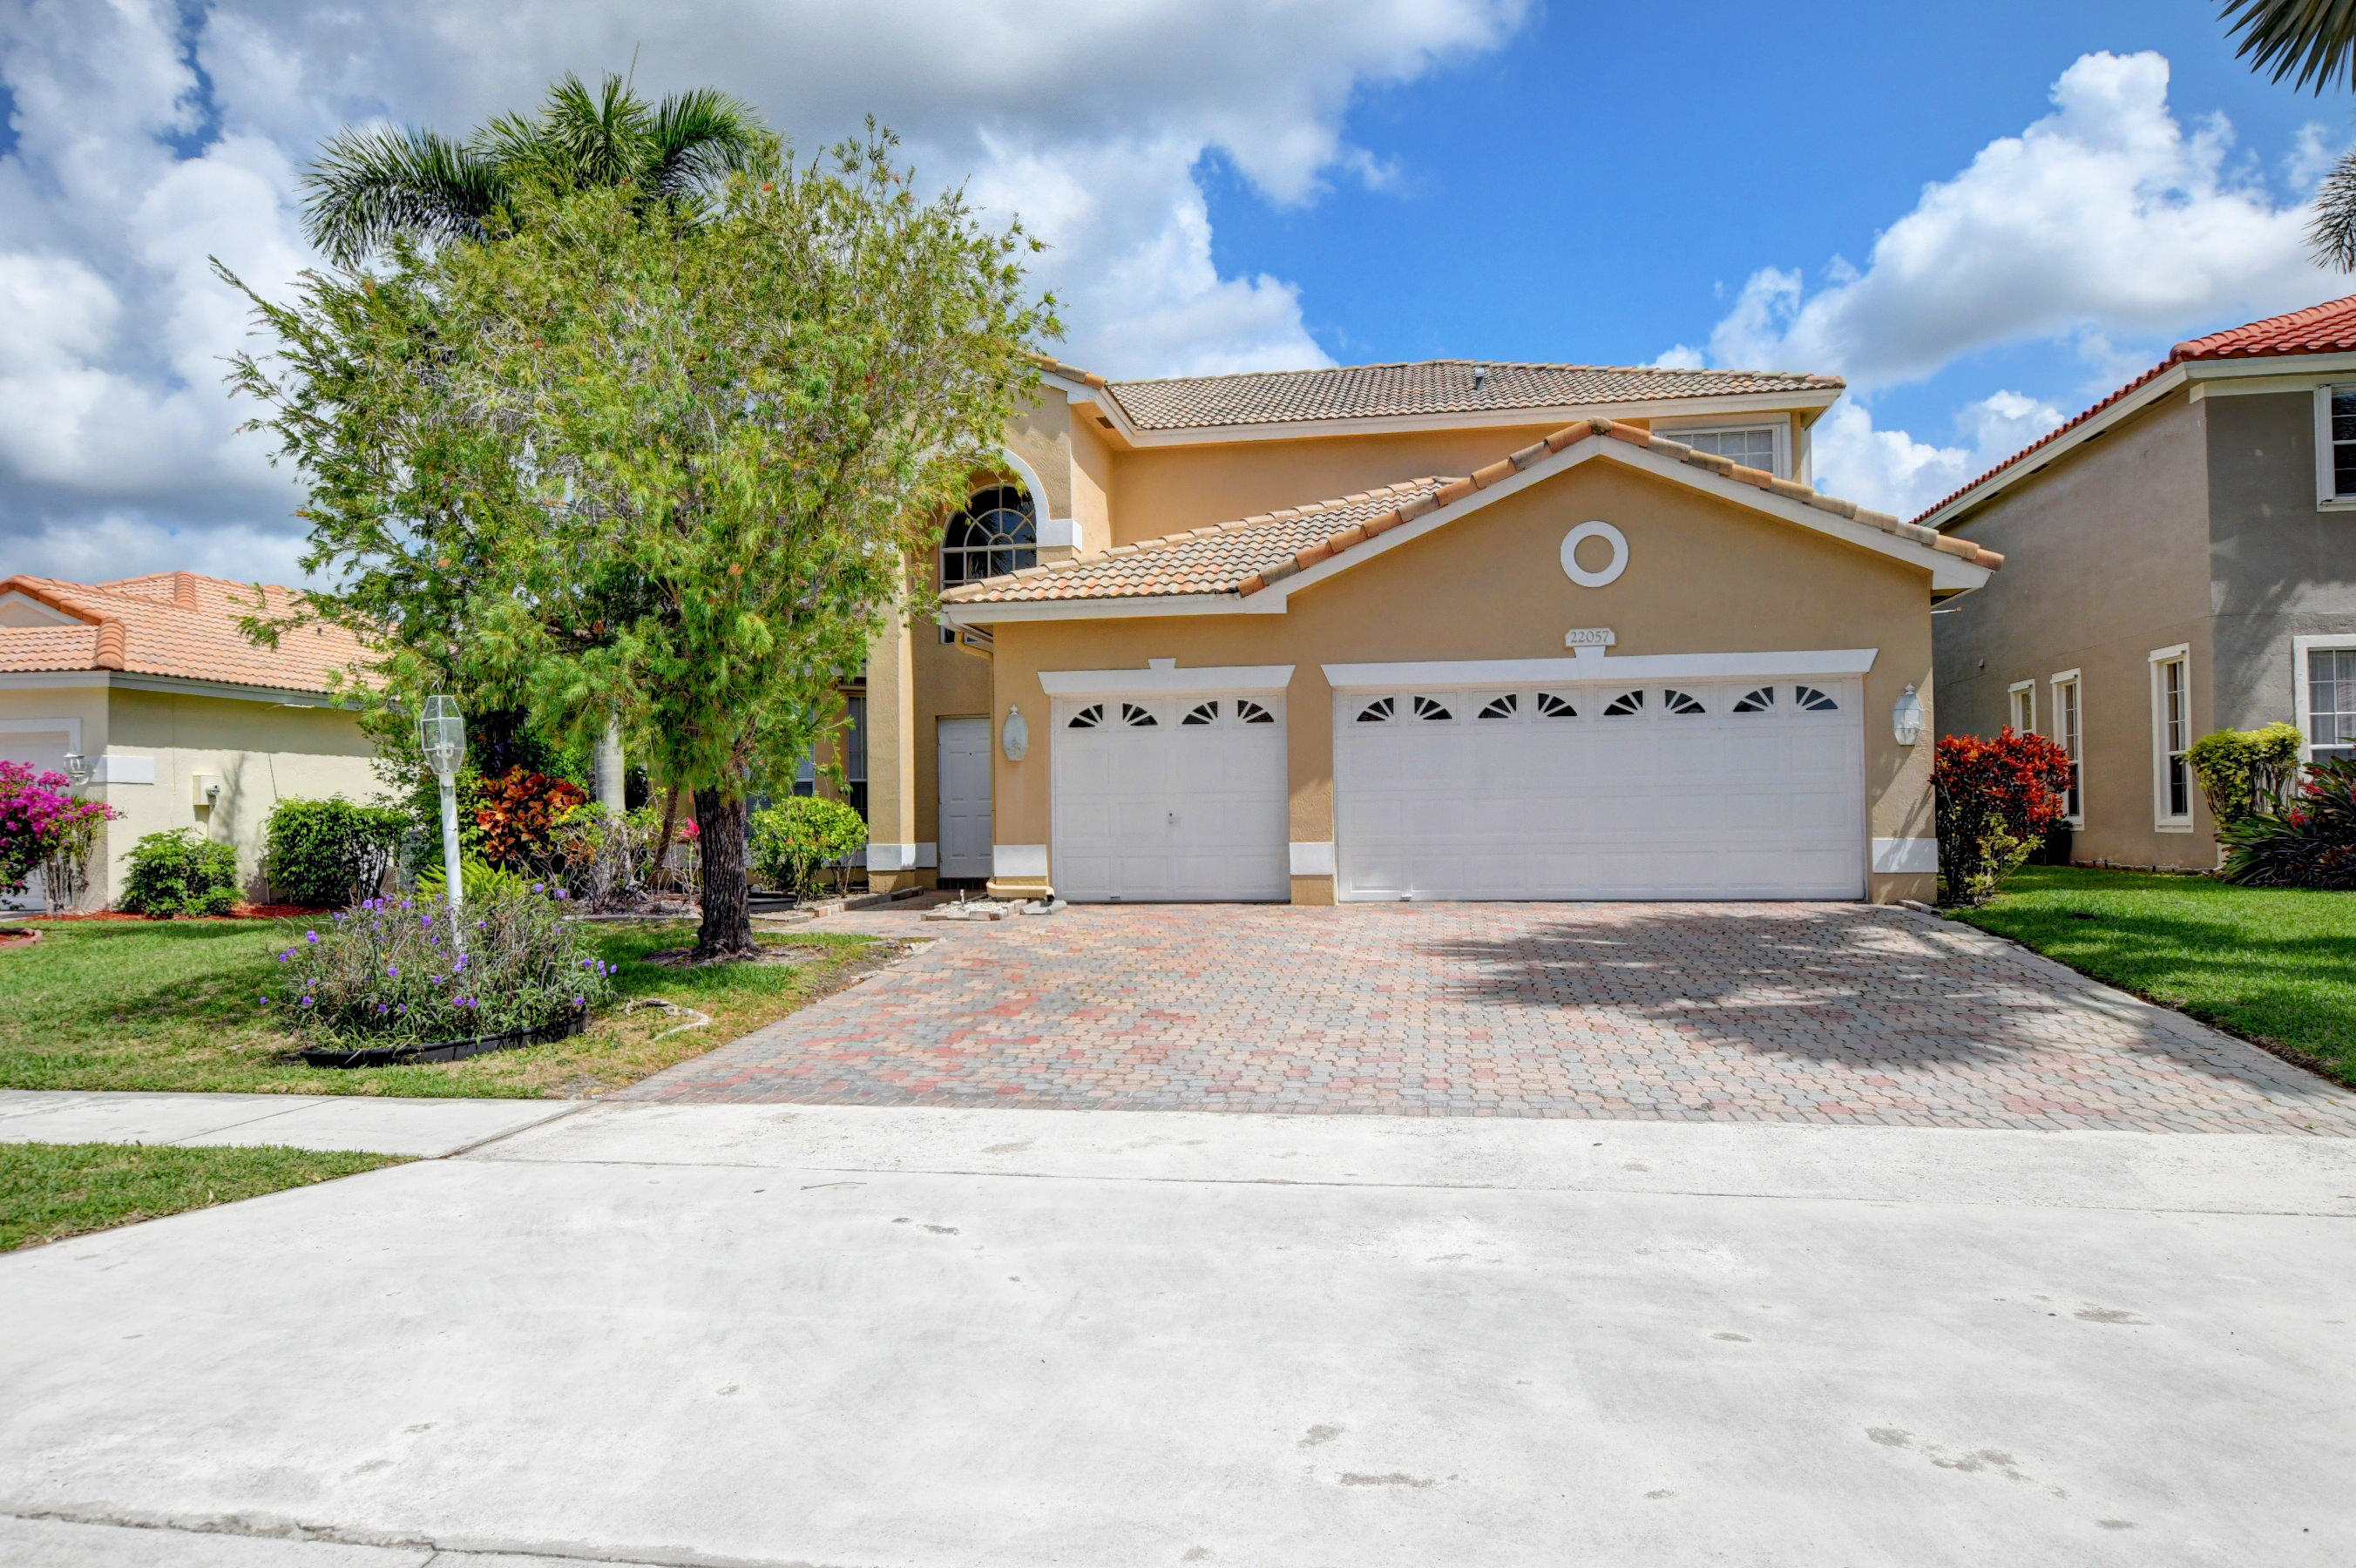 Beautiful , immaculate 4 bedroom, 2.5 bath lake home in the desirable community of Boca Winds. Upgraded kitchen with granite countertops, Hugh screen enclosure over looking spectacular lake views. All bedrooms upstairs. Master over looking lake. Accordion shutters. Steps from heated community pool, tennis and basketball. Walk or bike to 3 ''A'' rated schools. Minutes from outdoor amphitheater, water park, nature center, tennis courts, boat ramp, pet park, and 27 hole golf course. Low HOA. It won't last!